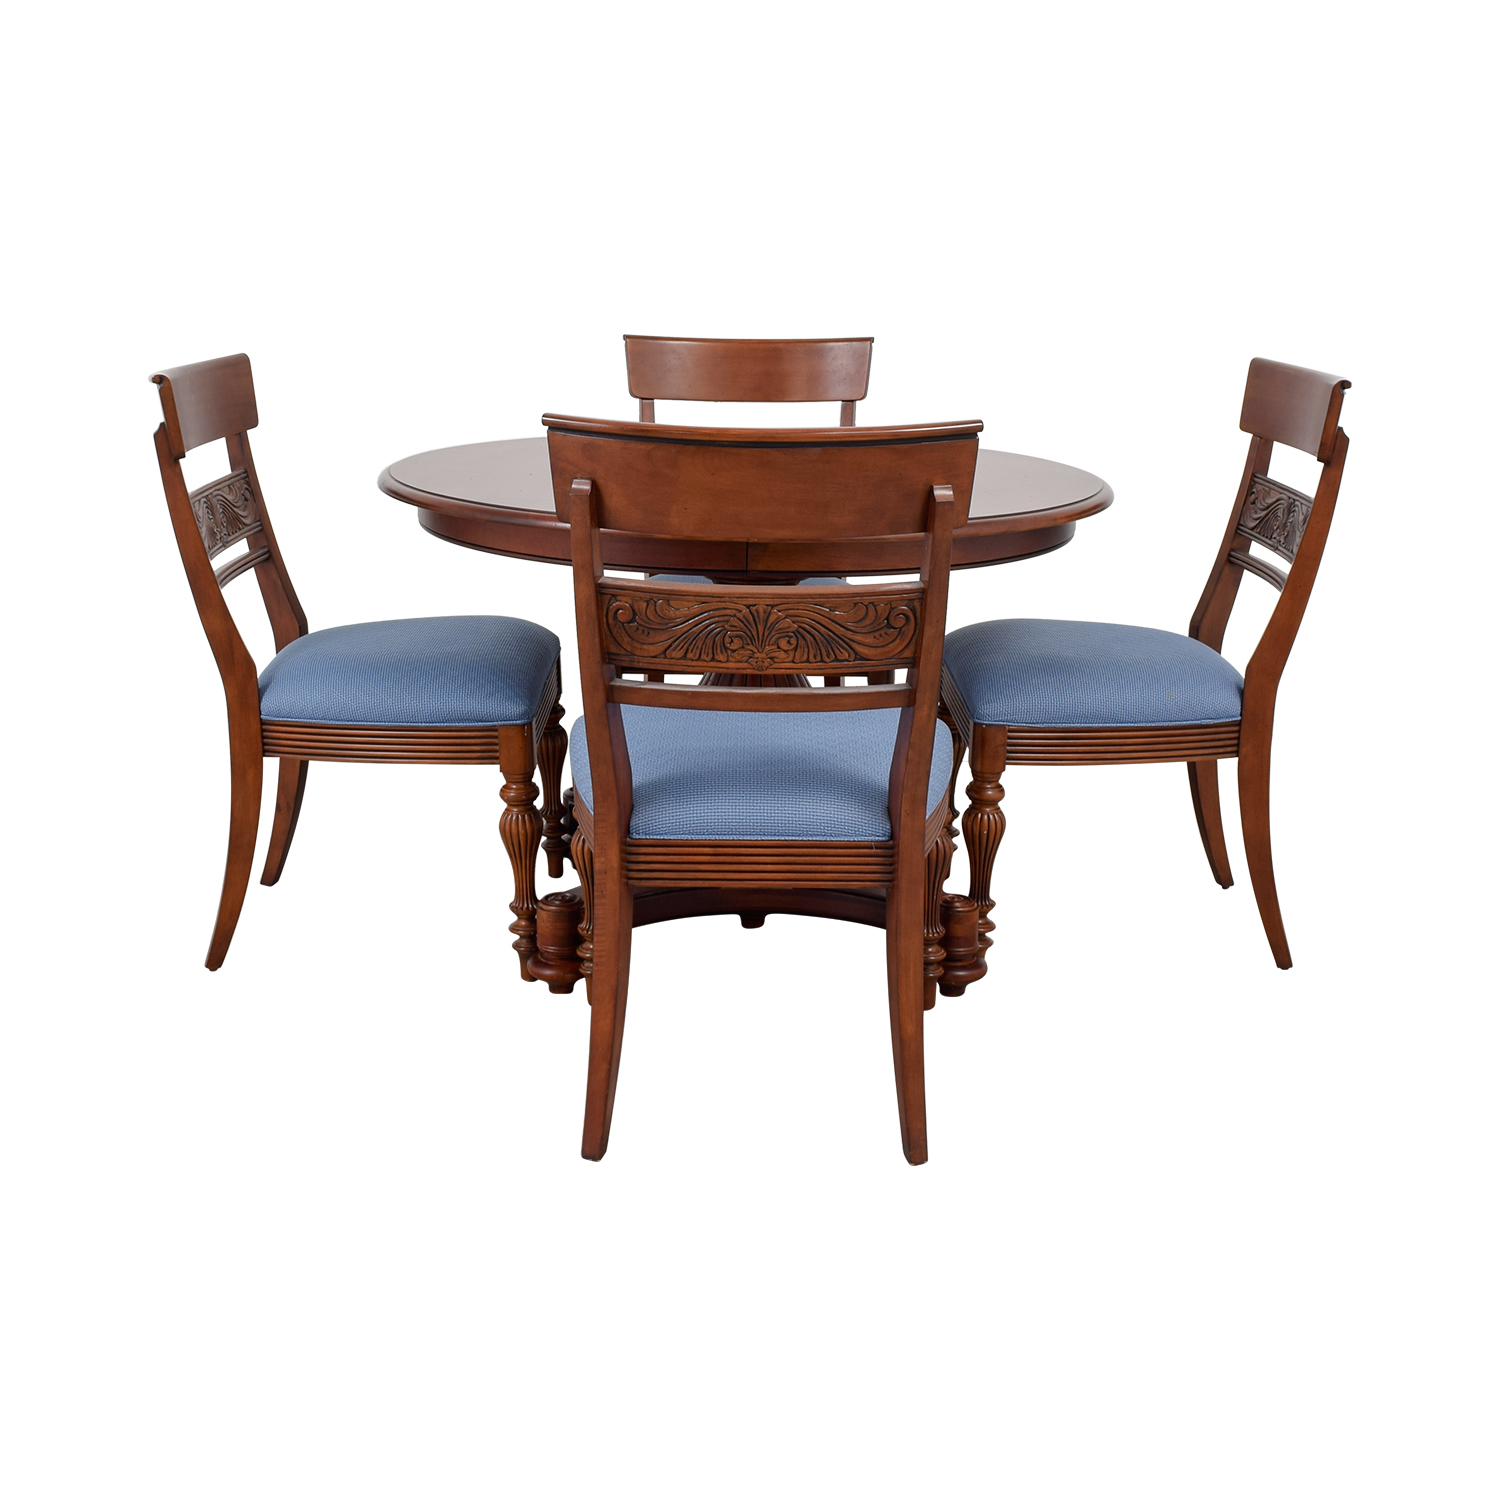 Ethan Allen Ethan Allen Round Extendable Dining Set on sale